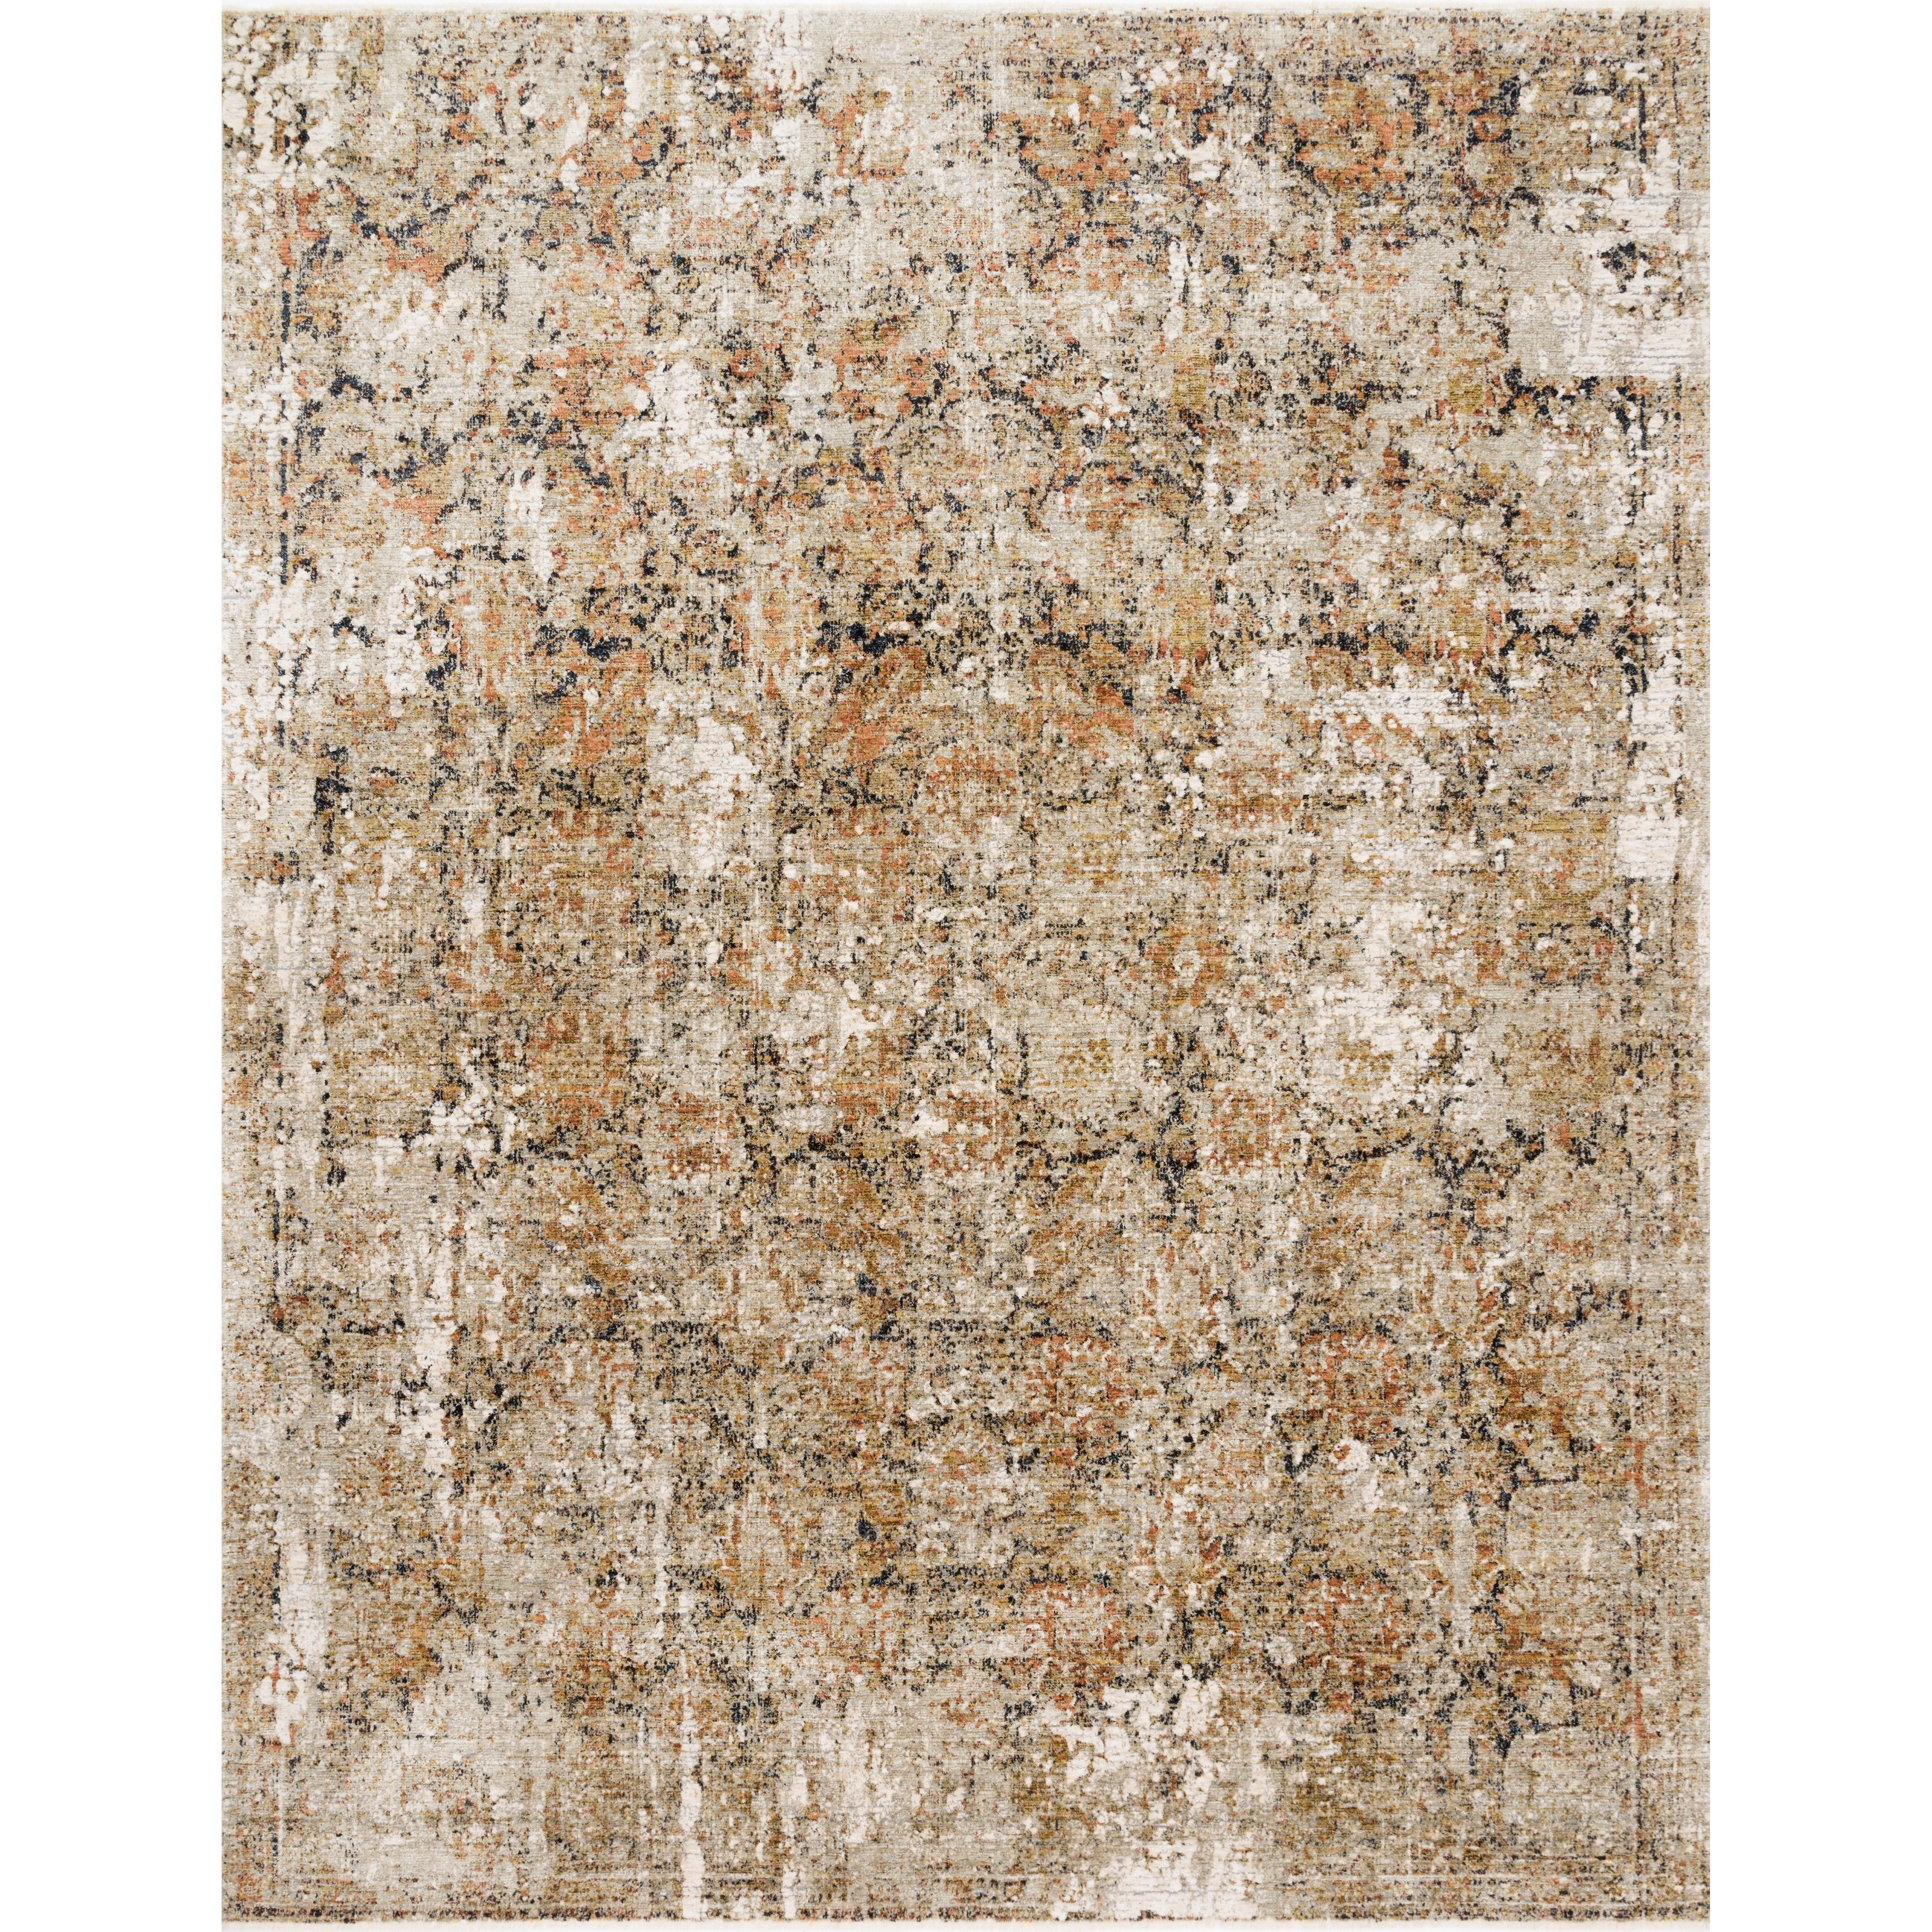 """Theia 3'7"""" x 5'2"""" Taupe / Gold Rug by Loloi Rugs at Virginia Furniture Market"""